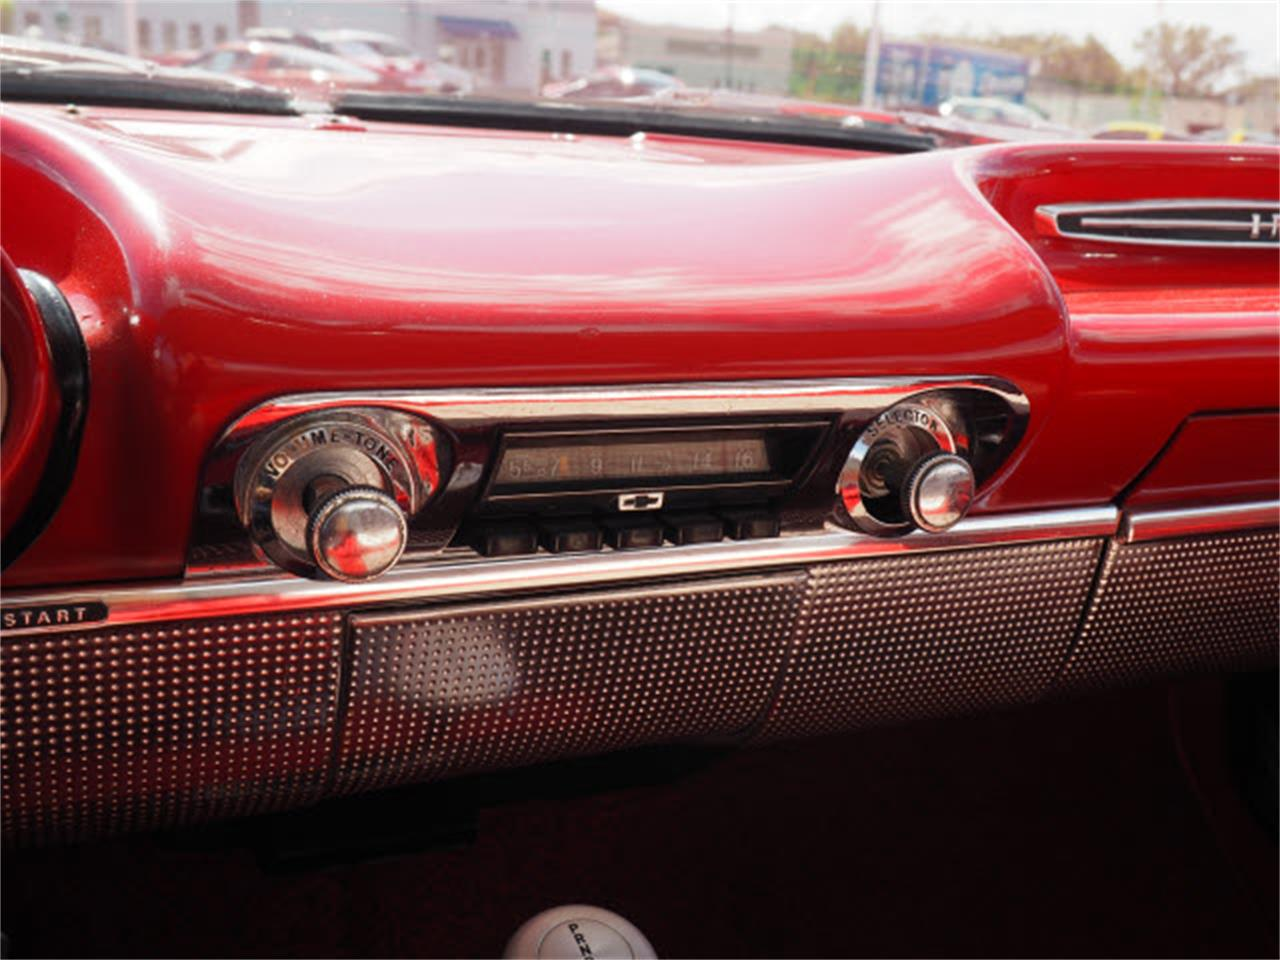 1960 Chevrolet Impala for sale in Downers Grove, IL – photo 20